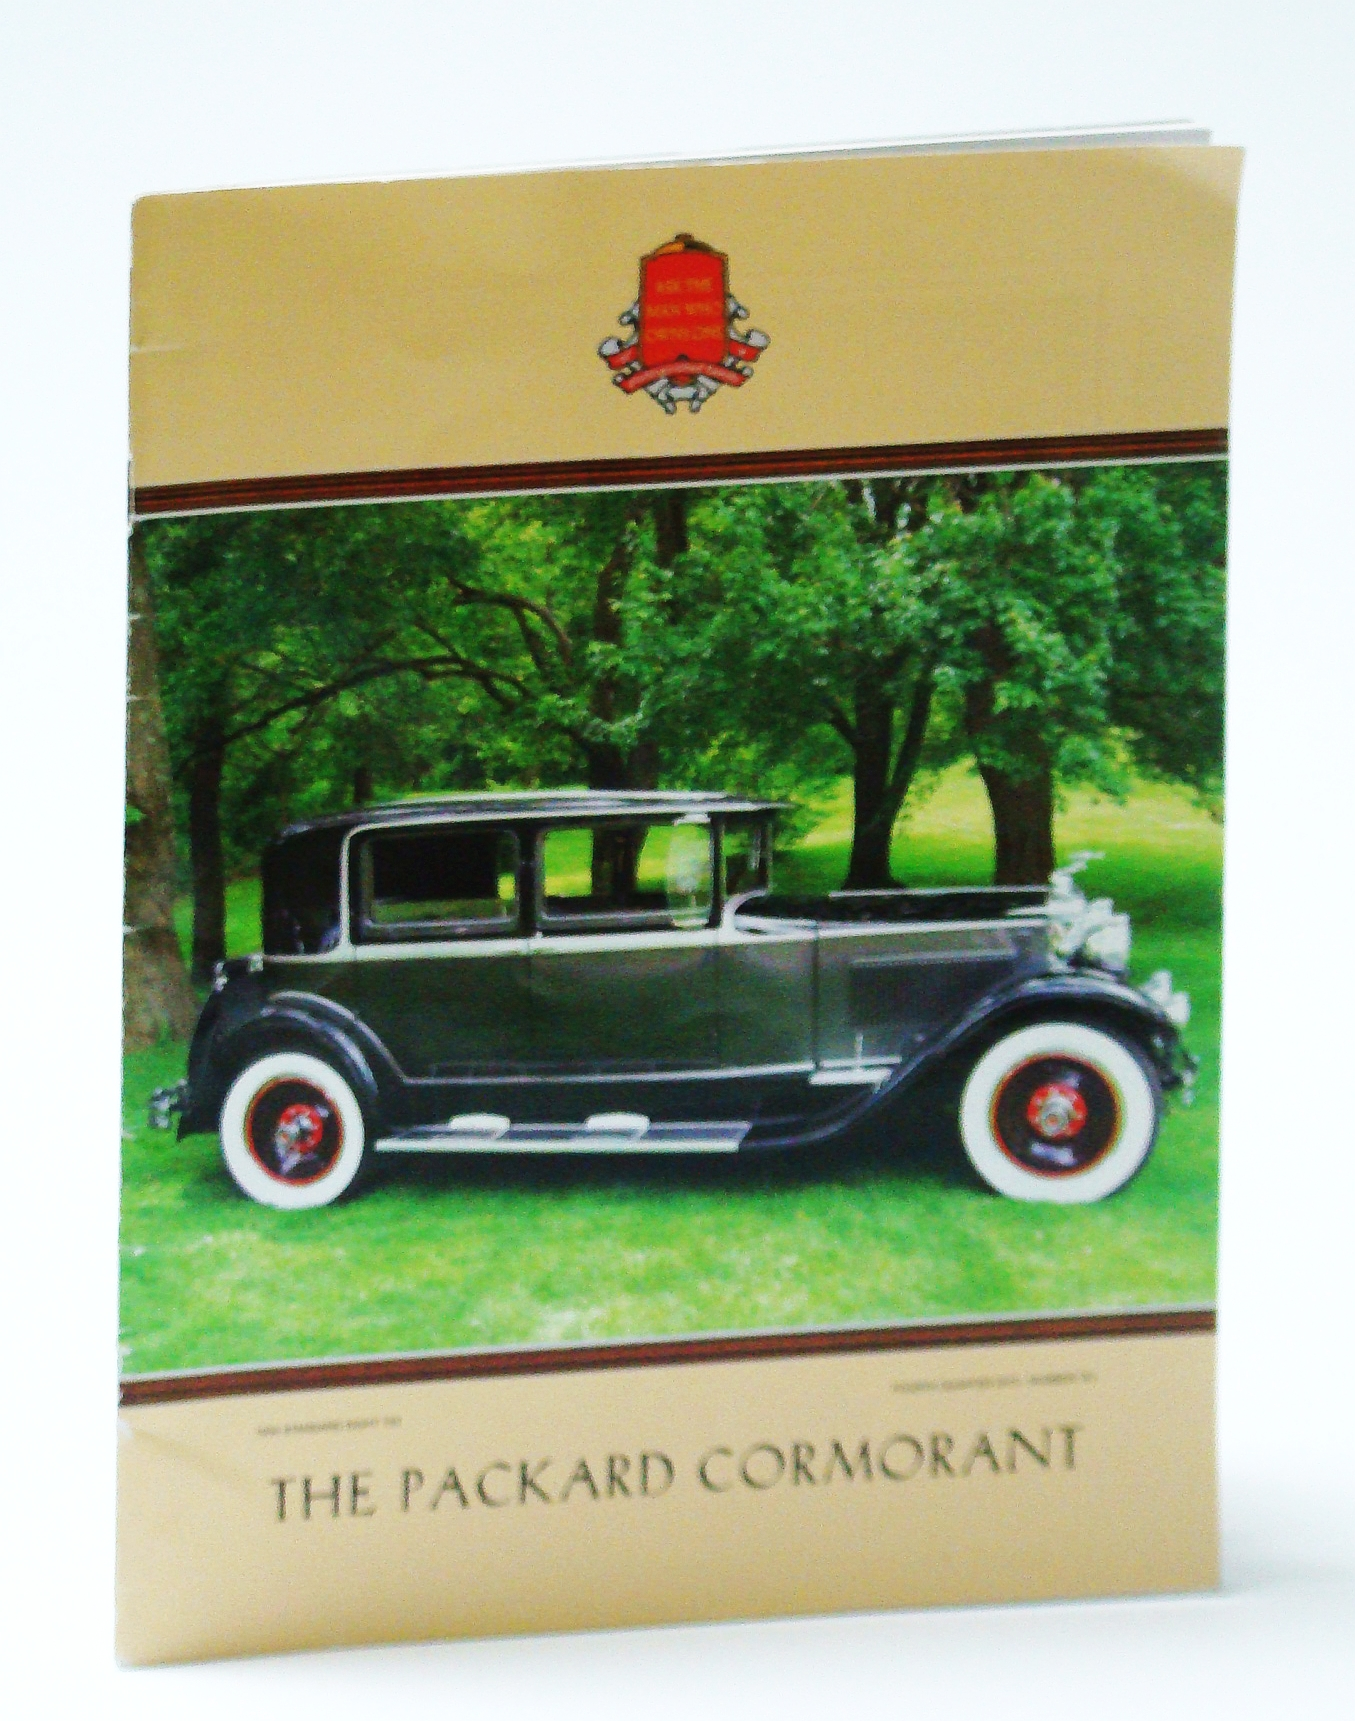 Image for The Packard Cormorant, Fourth (4th) Quarter 2015 - The International Magazine of Packard Automobile Classics, Number 161 - 1930 Standard Eight 733 Cover Photo